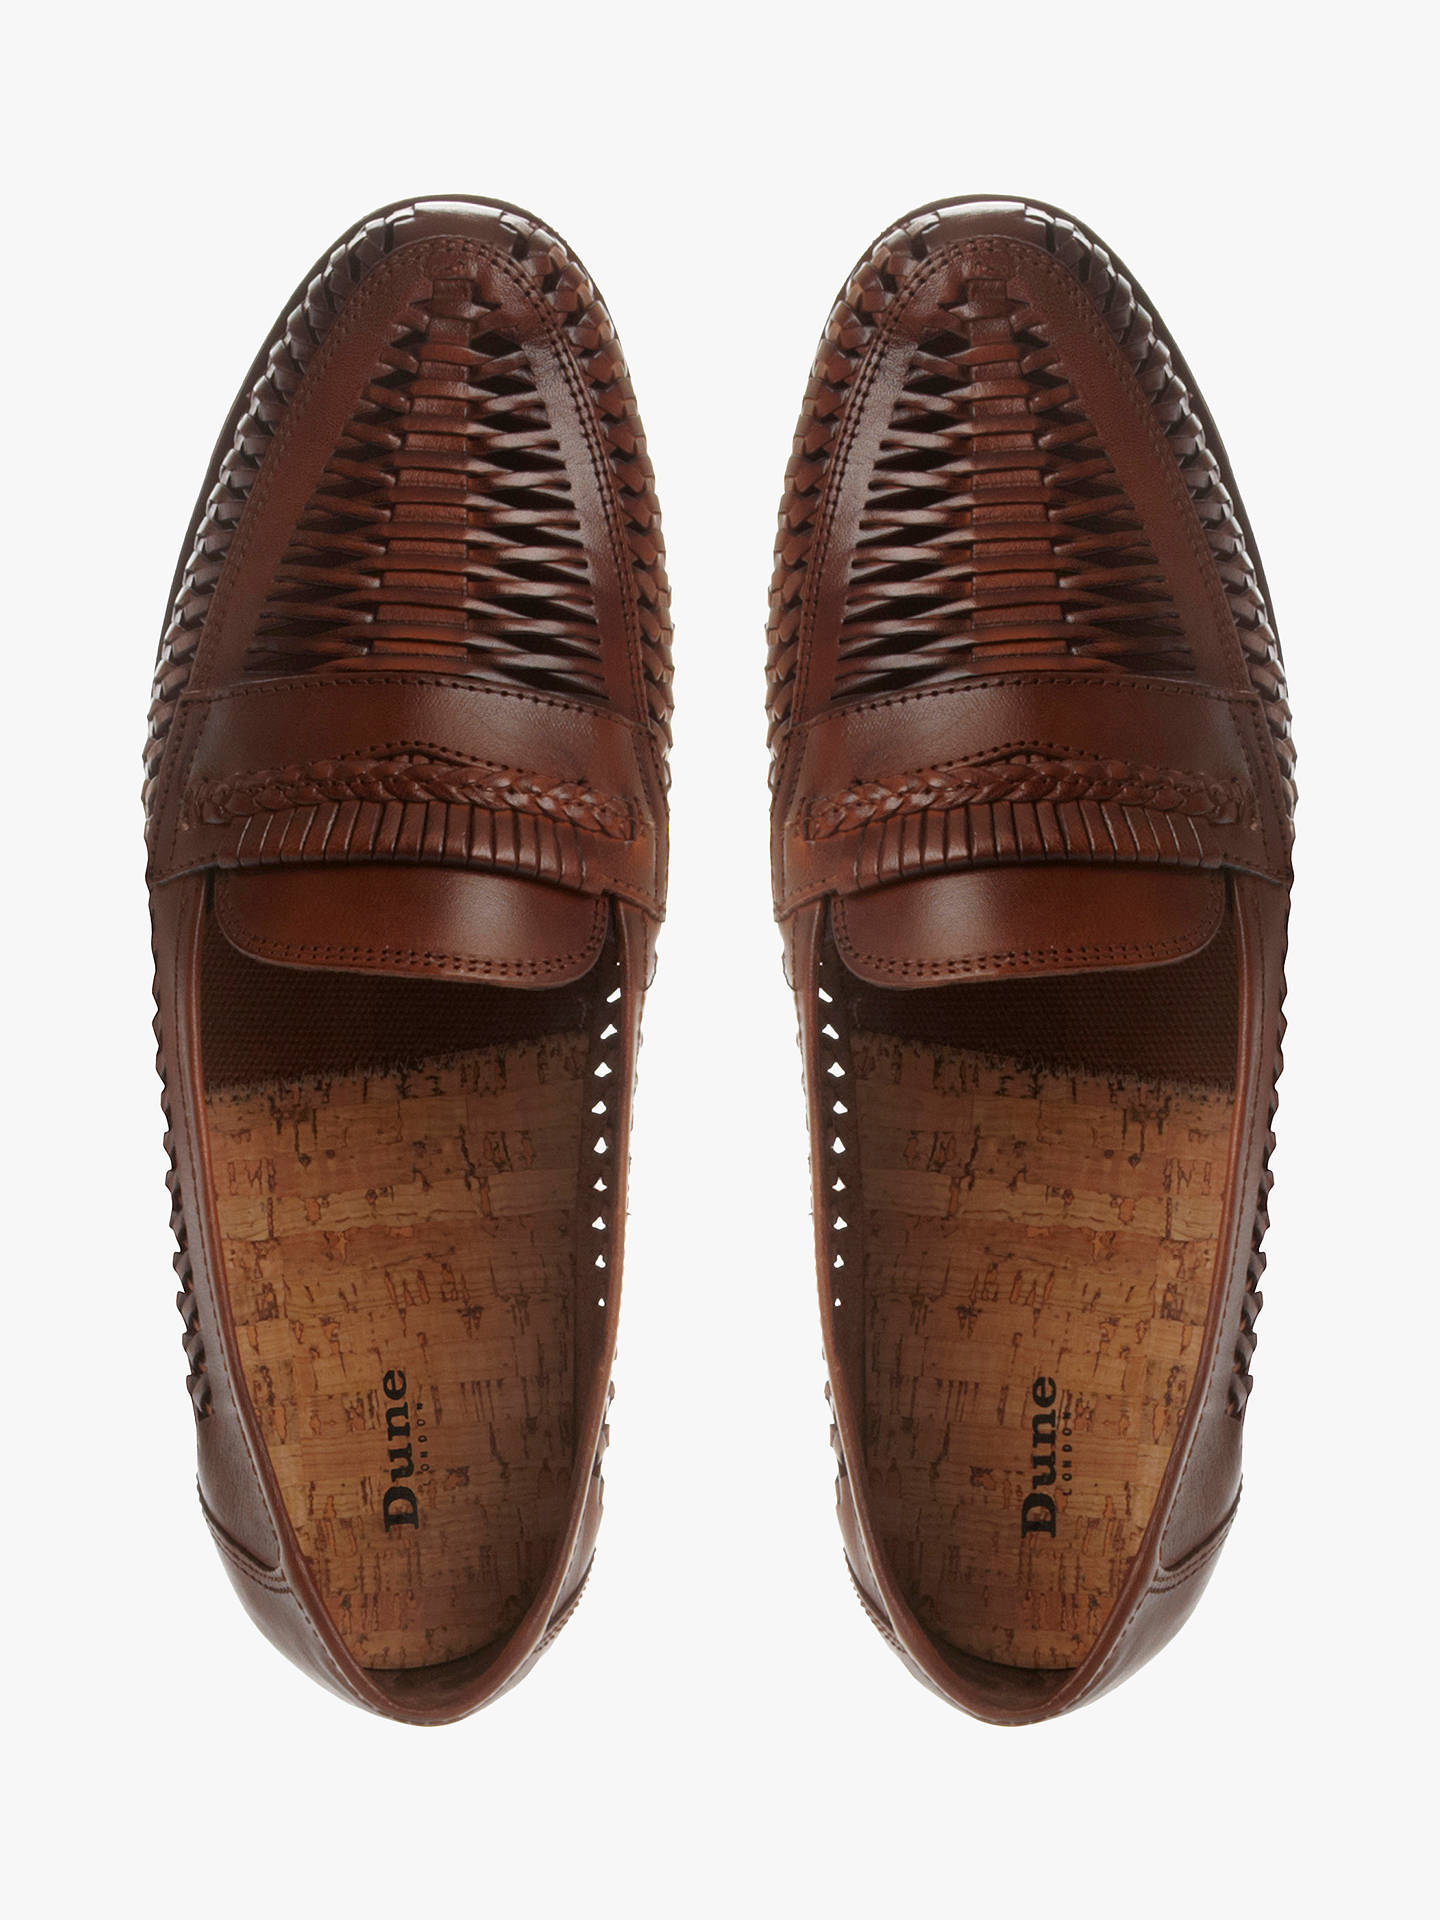 dd55661a5a0408 ... Buy Dune Brighton Rock Woven Leather Loafers, Tan, 6 Online at  johnlewis.com